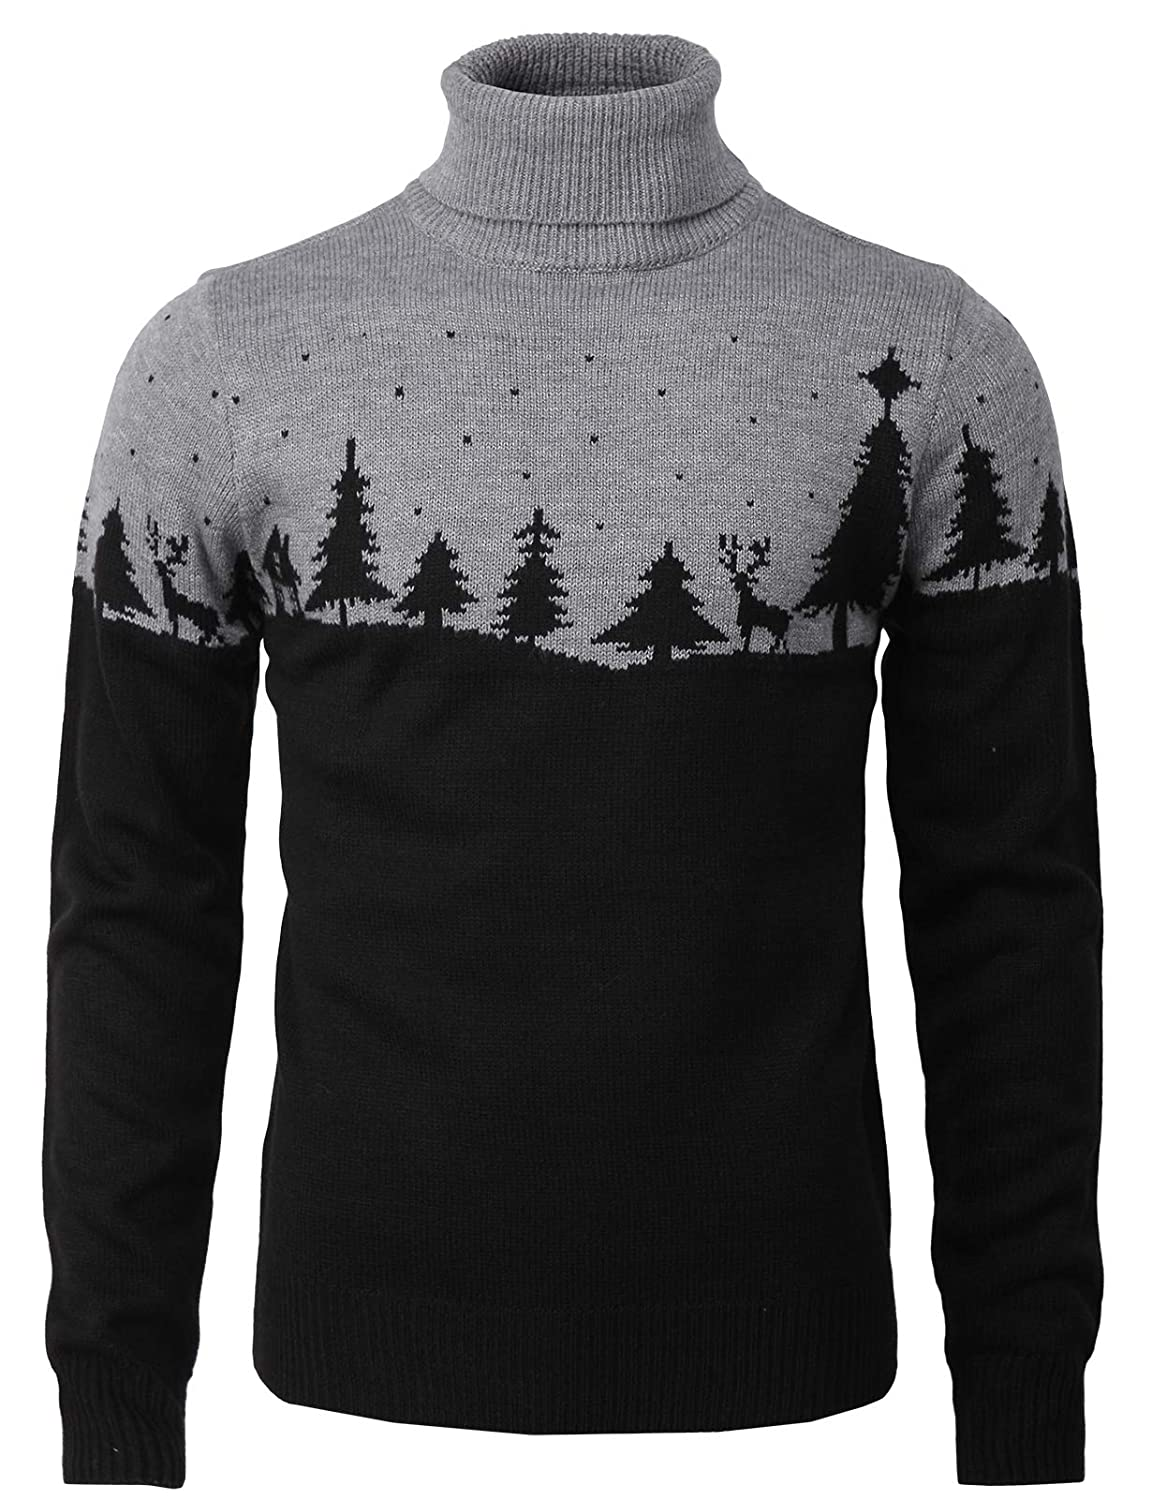 196675accb H2H Mens Casual Slim Fit Knitted Pullover Sweaters Thermal of Various  Christmas Pattern at Amazon Men s Clothing store